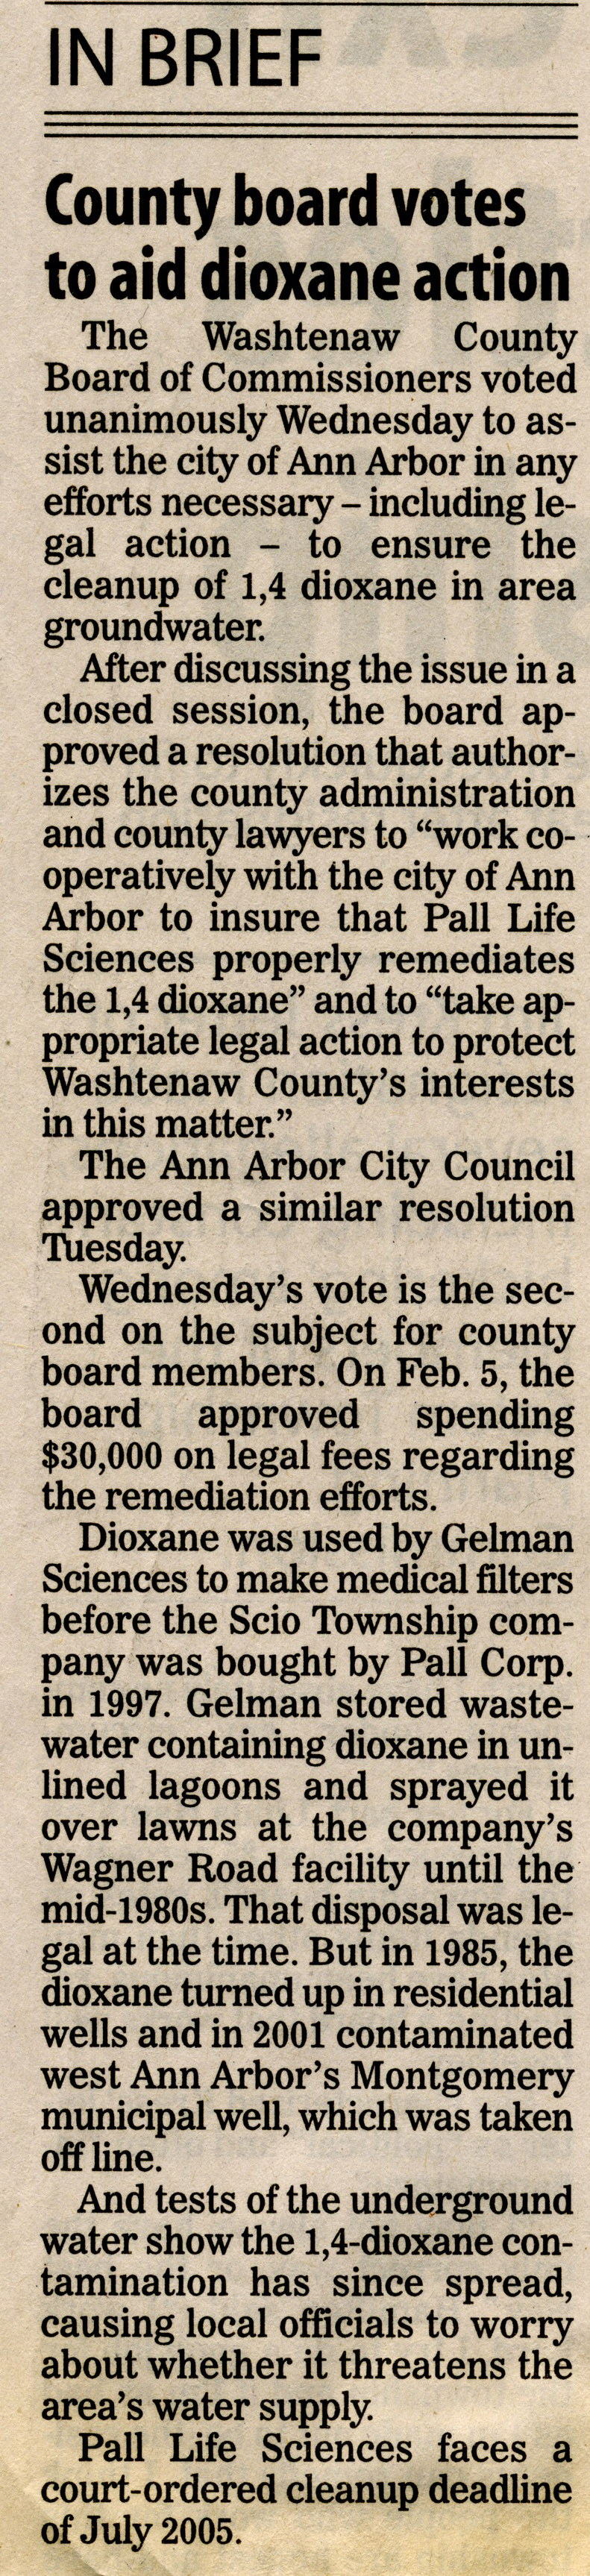 County Board Votes To Aid Dioxane Action image